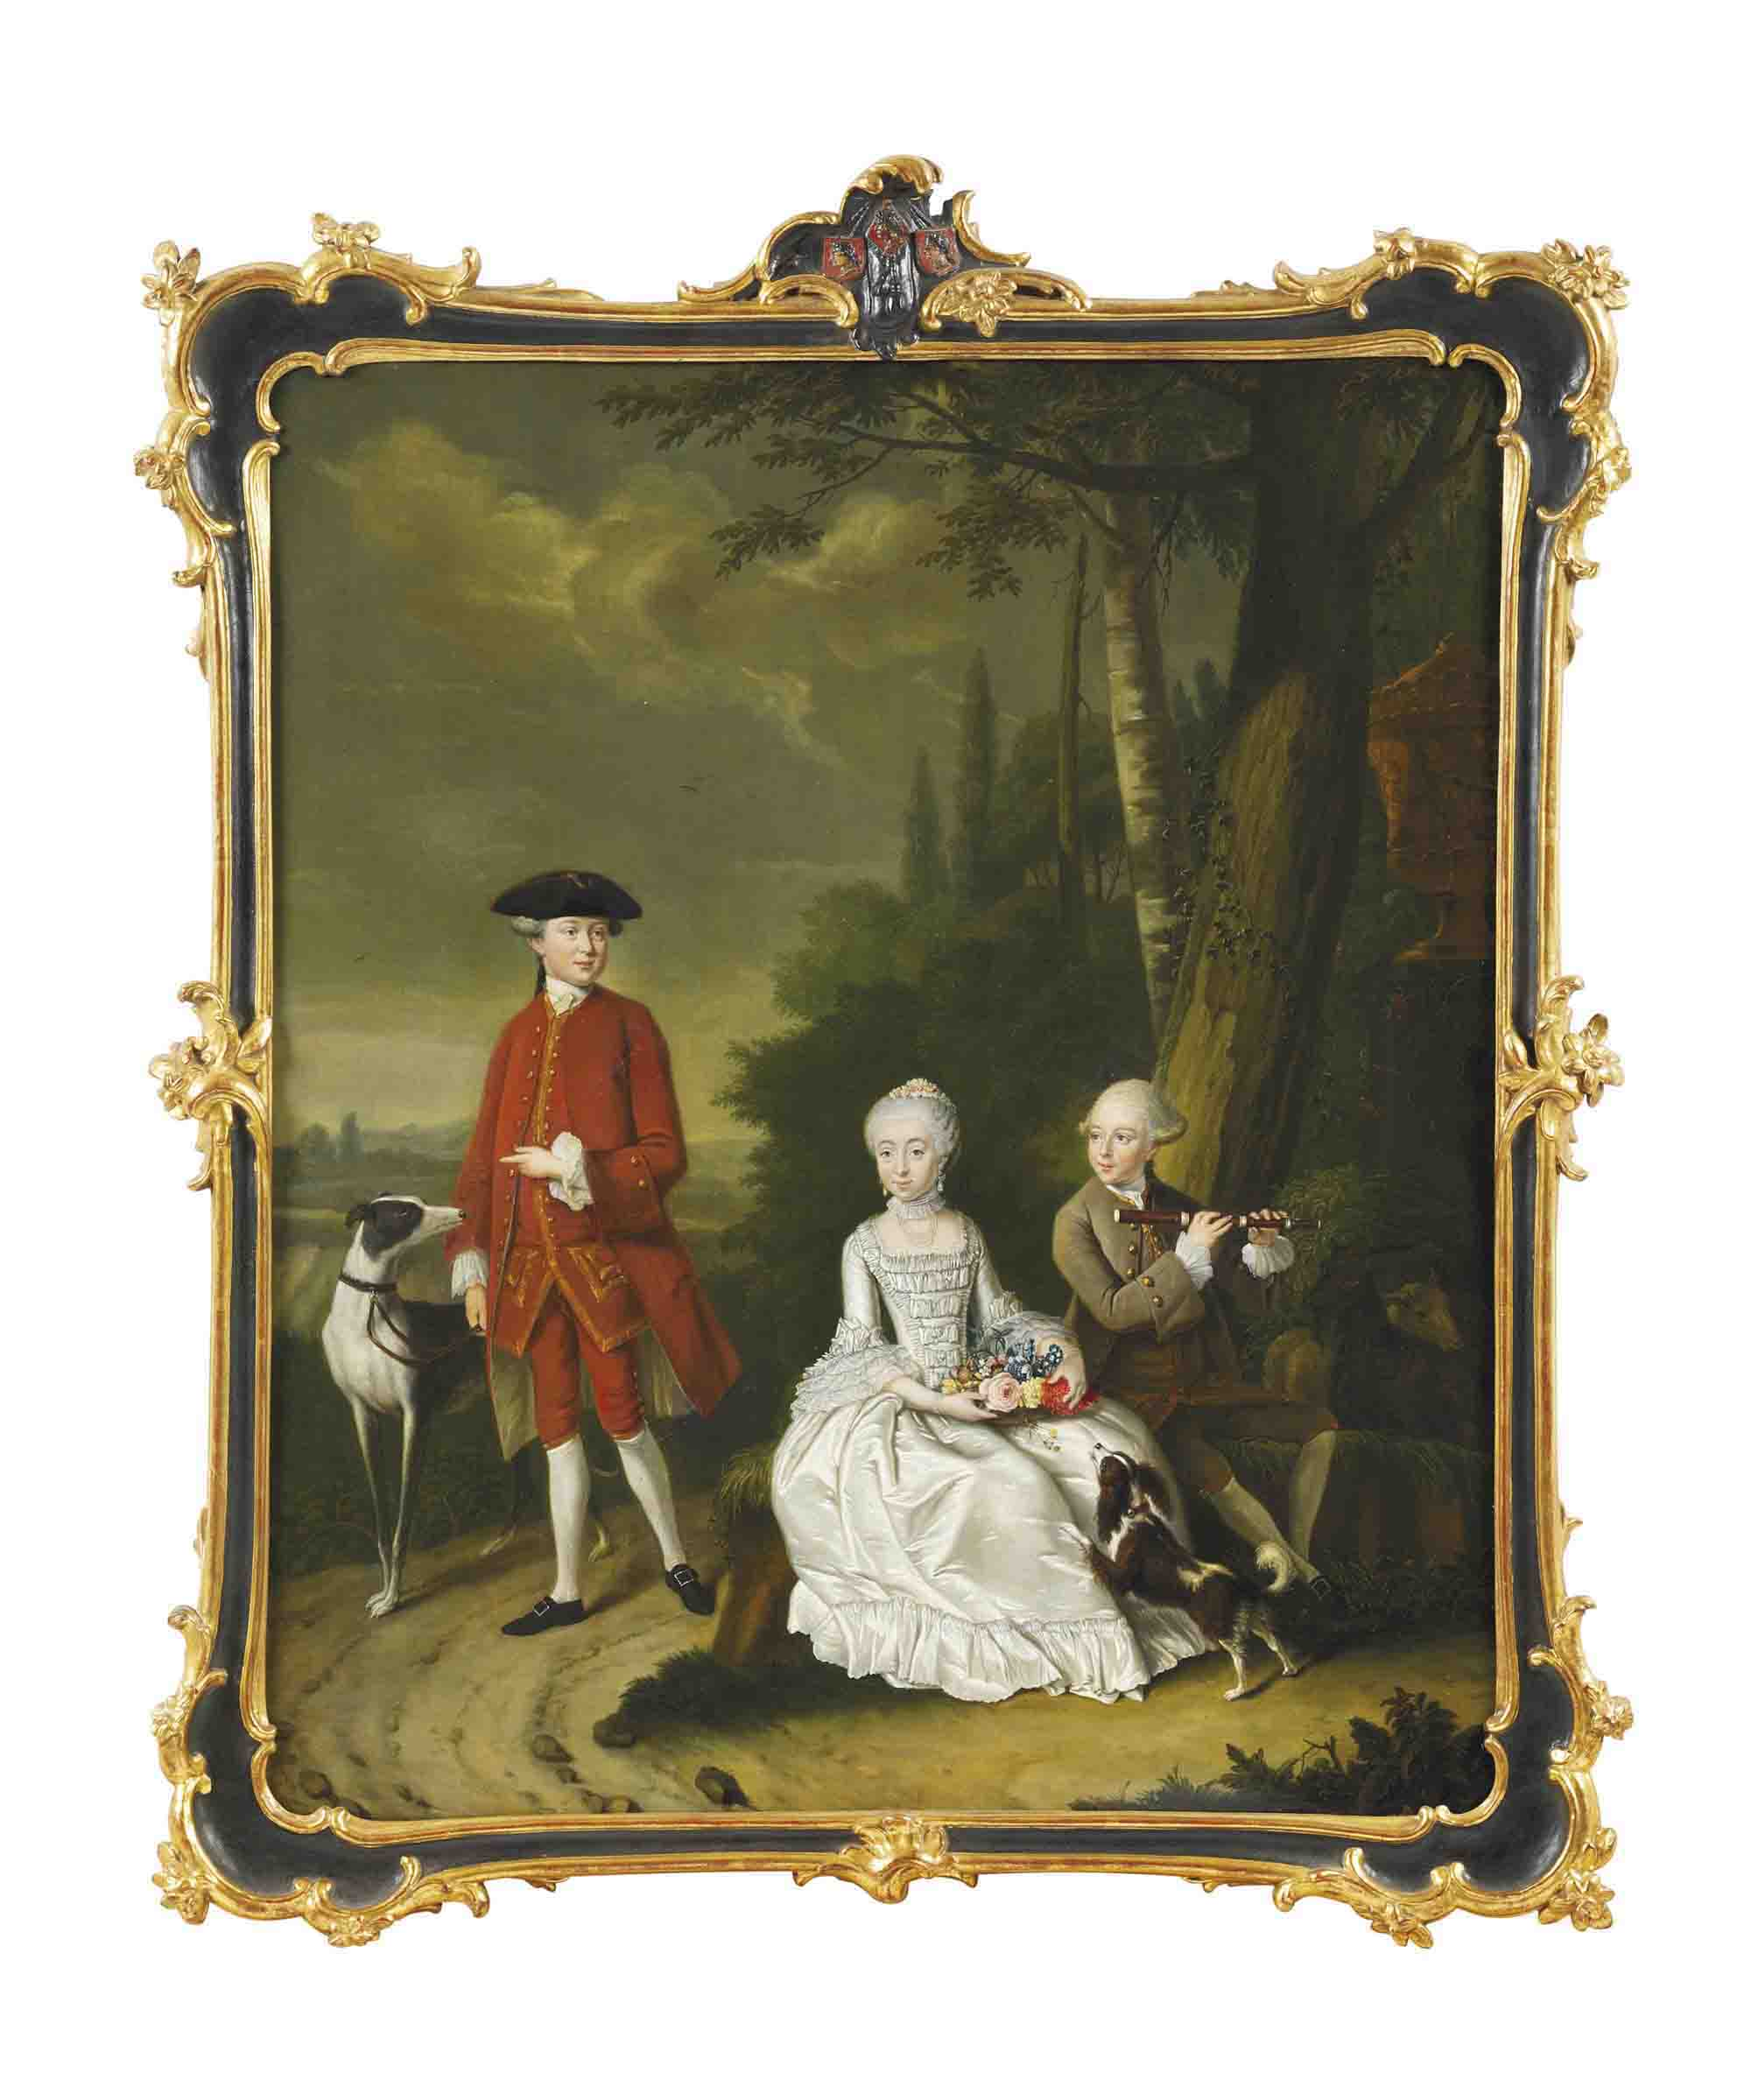 A group portrait of Isaac Willensz Hooft, Daniel Willensz Hooft and Clare Hidegonda Hooft with a spaniel and lurcher in a landscape